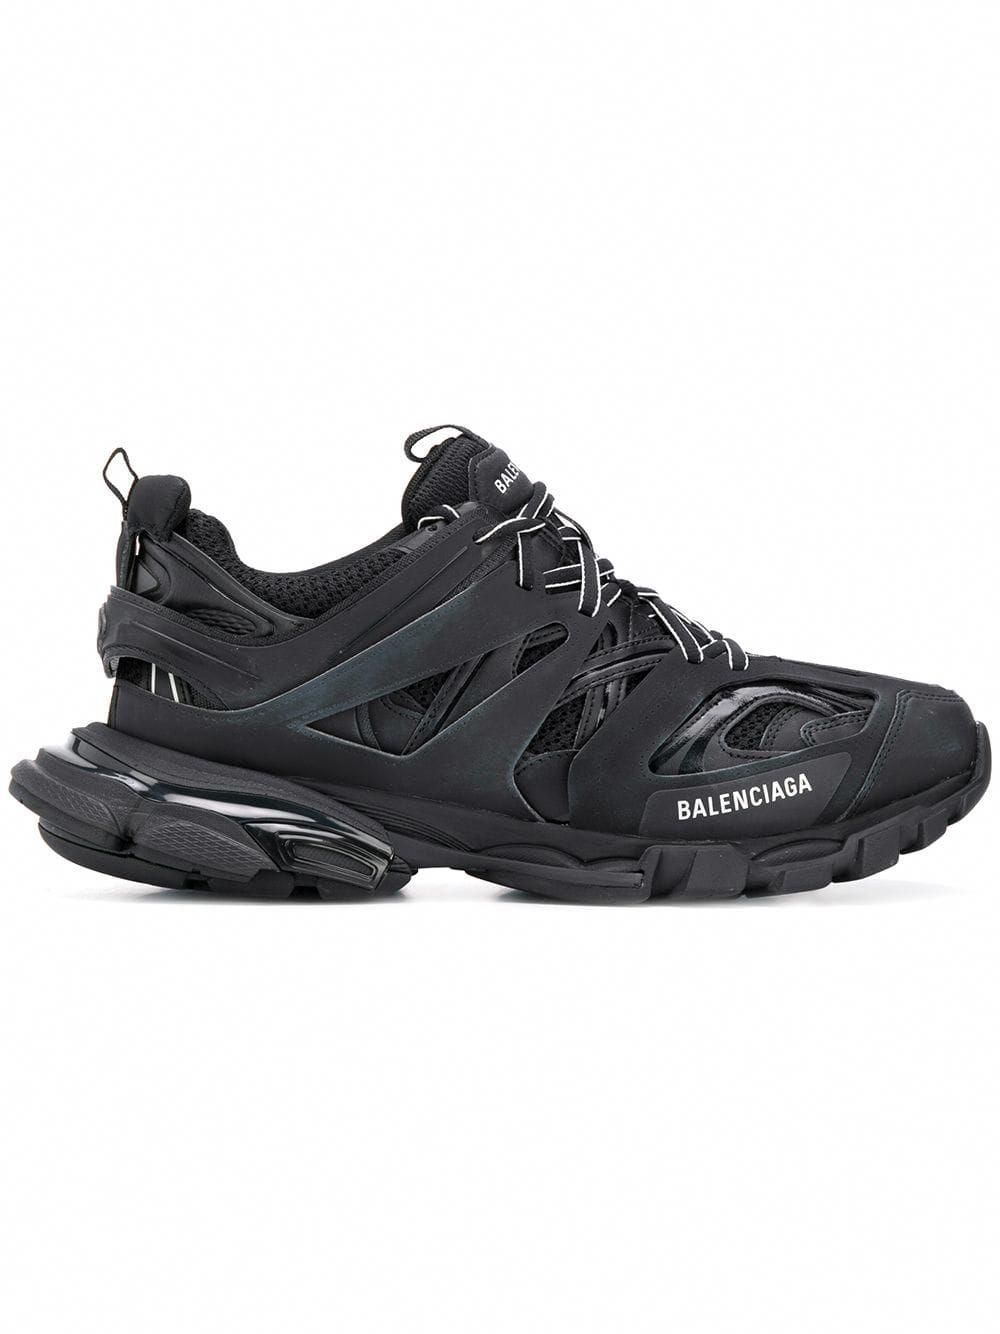 6d0b1a370 BALENCIAGA BALENCIAGA TRACK SNEAKERS - BLACK.  balenciaga  shoes   sneakersfashion